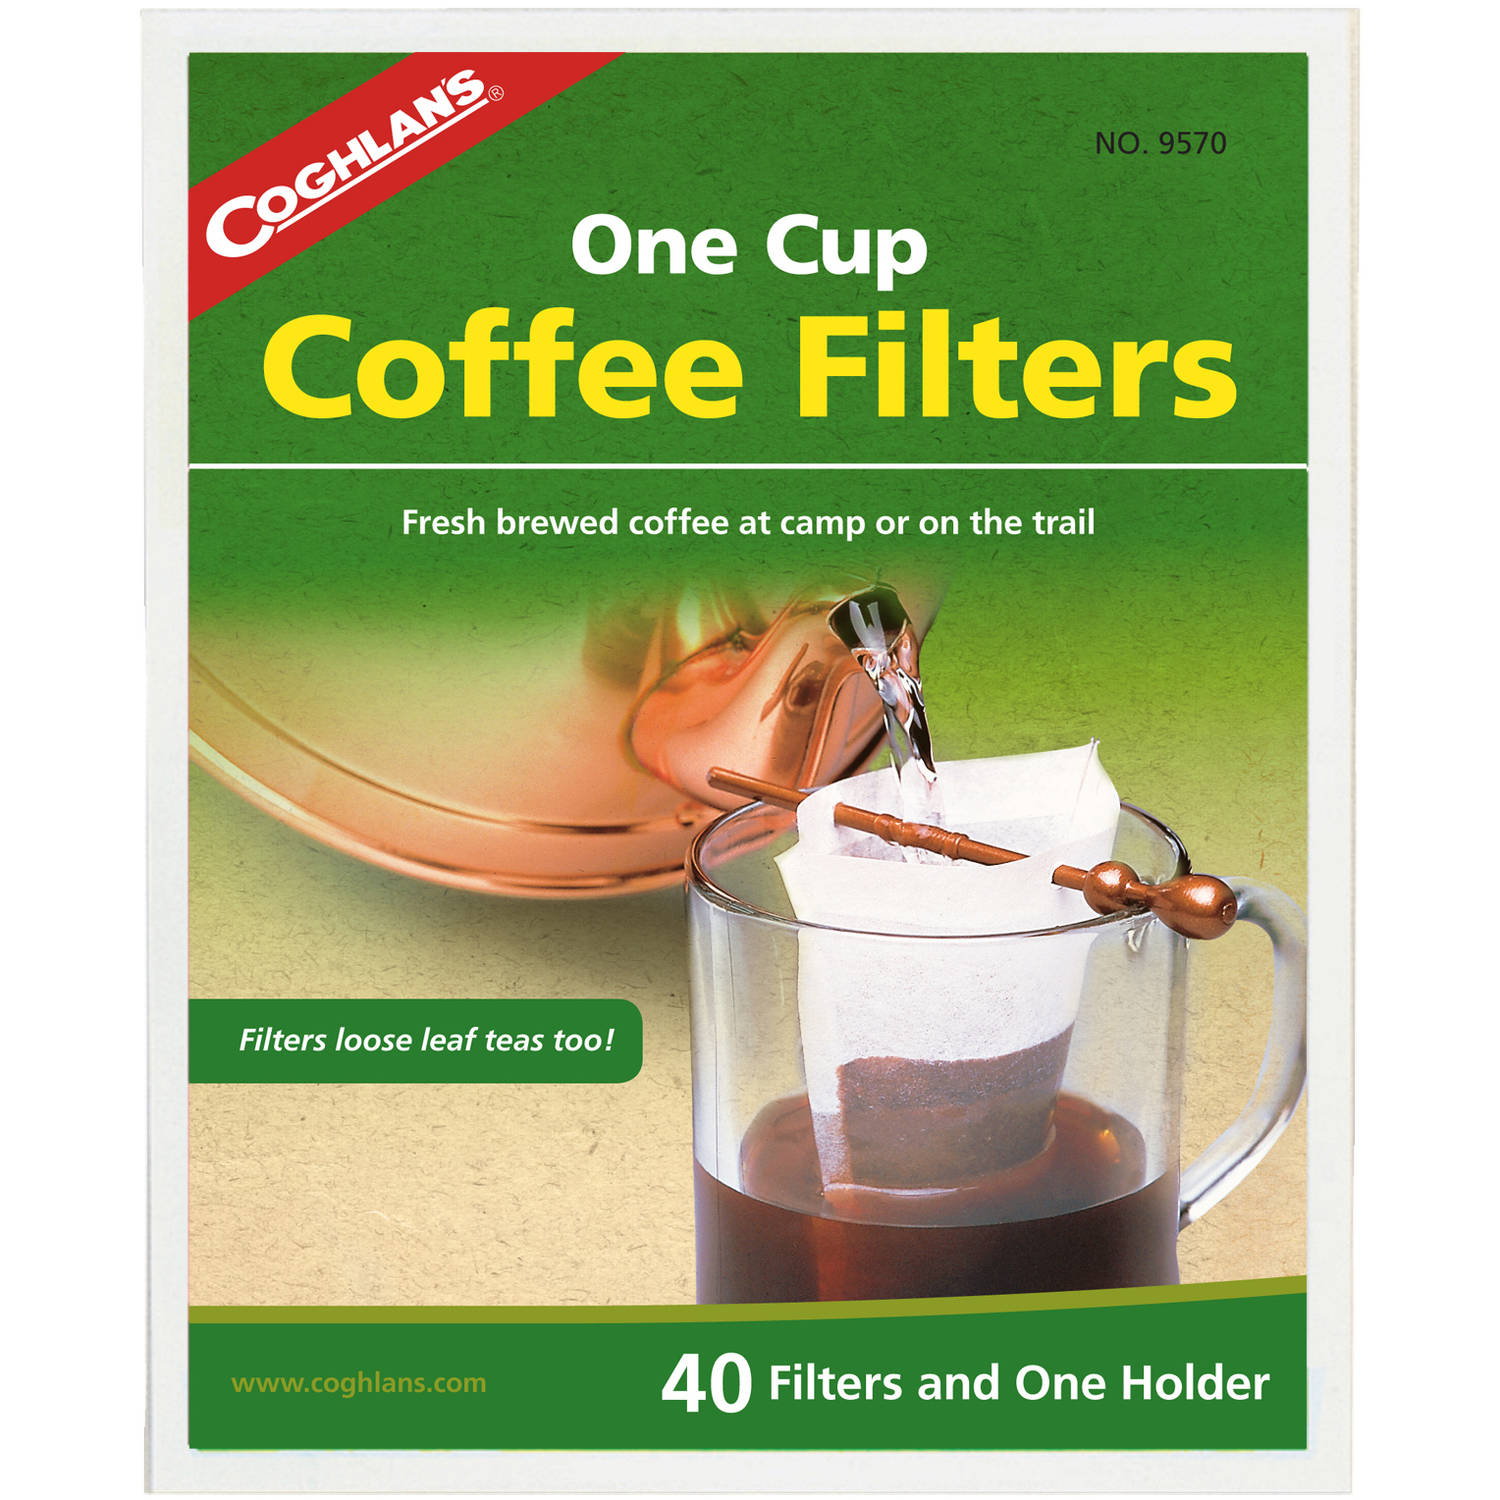 Coghlan's One-Cup Coffee Filters by Generic